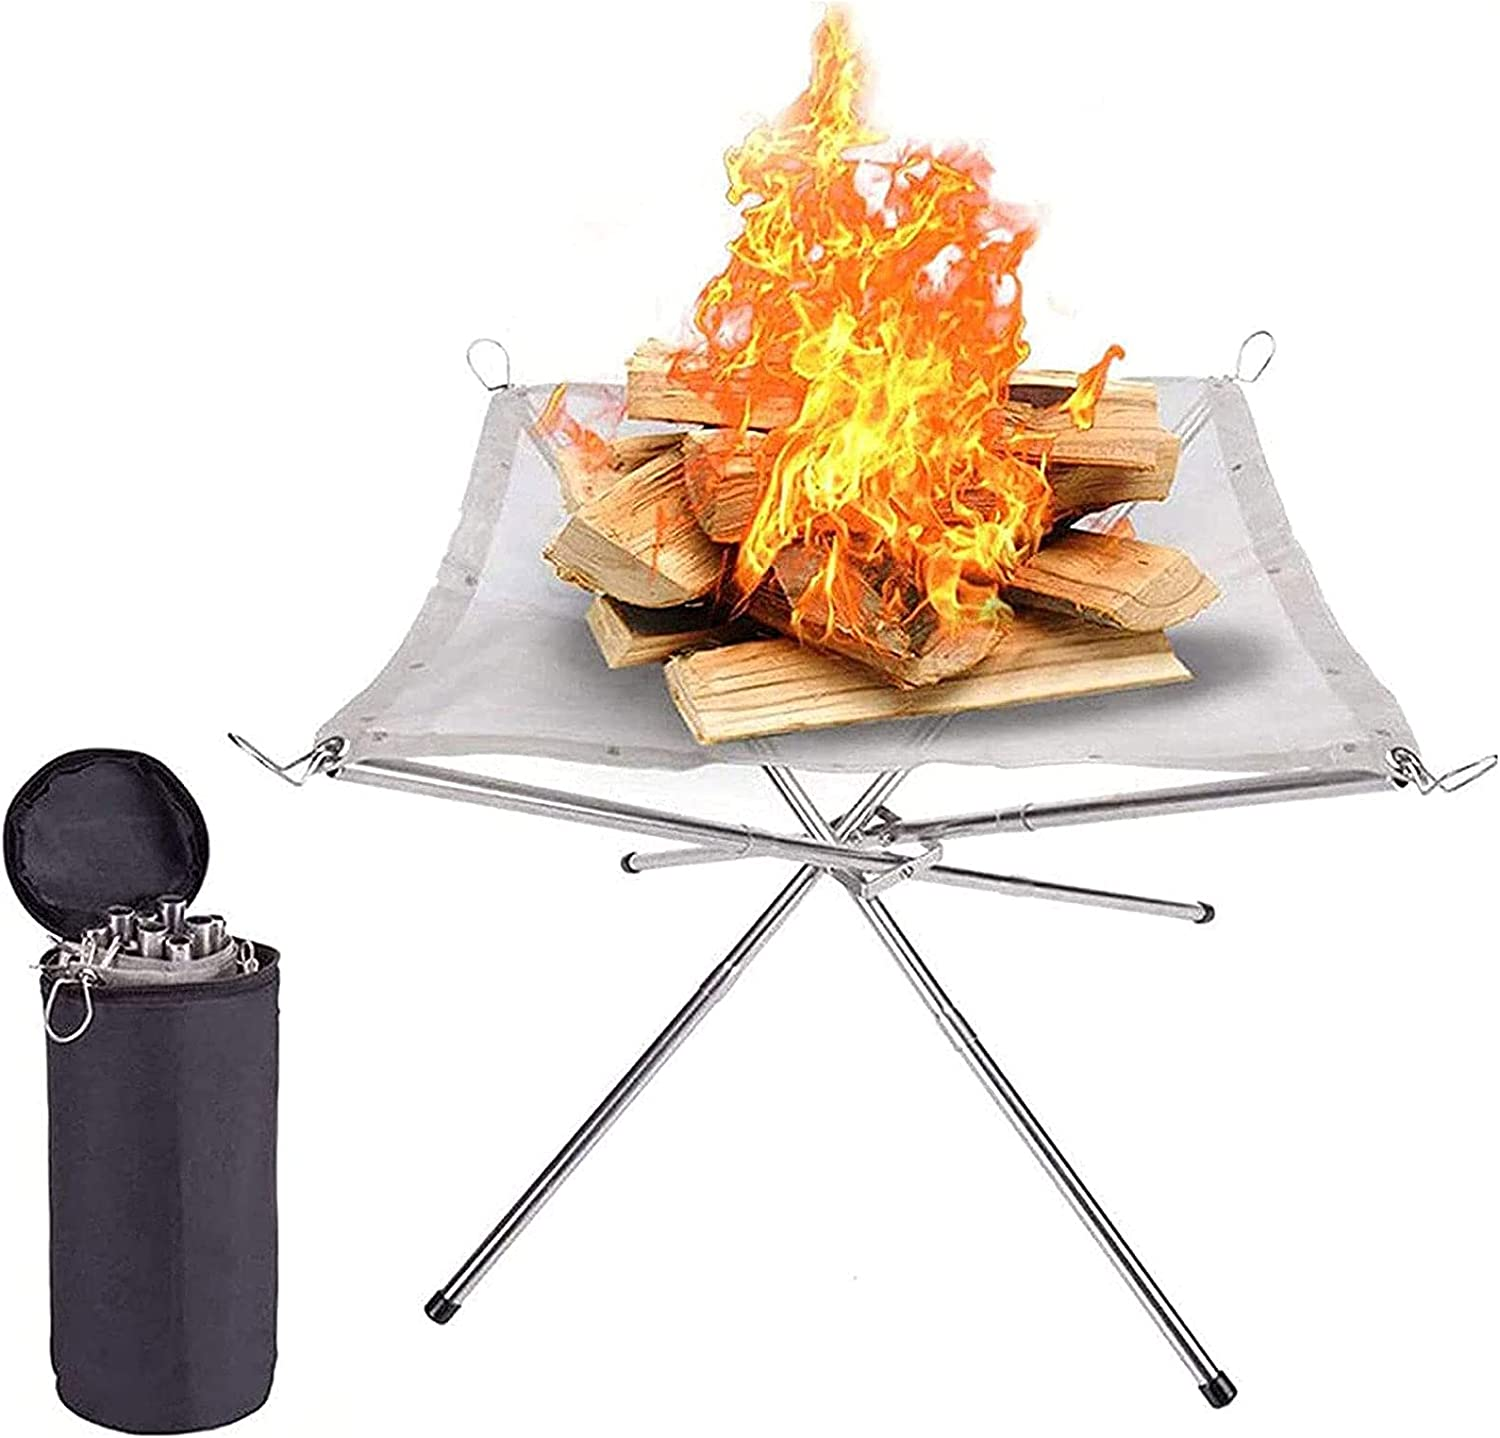 Award-winning store Portable Outdoor Fire Pit with Carrying Bag 22 Las Vegas Mall Inch Sta Camping